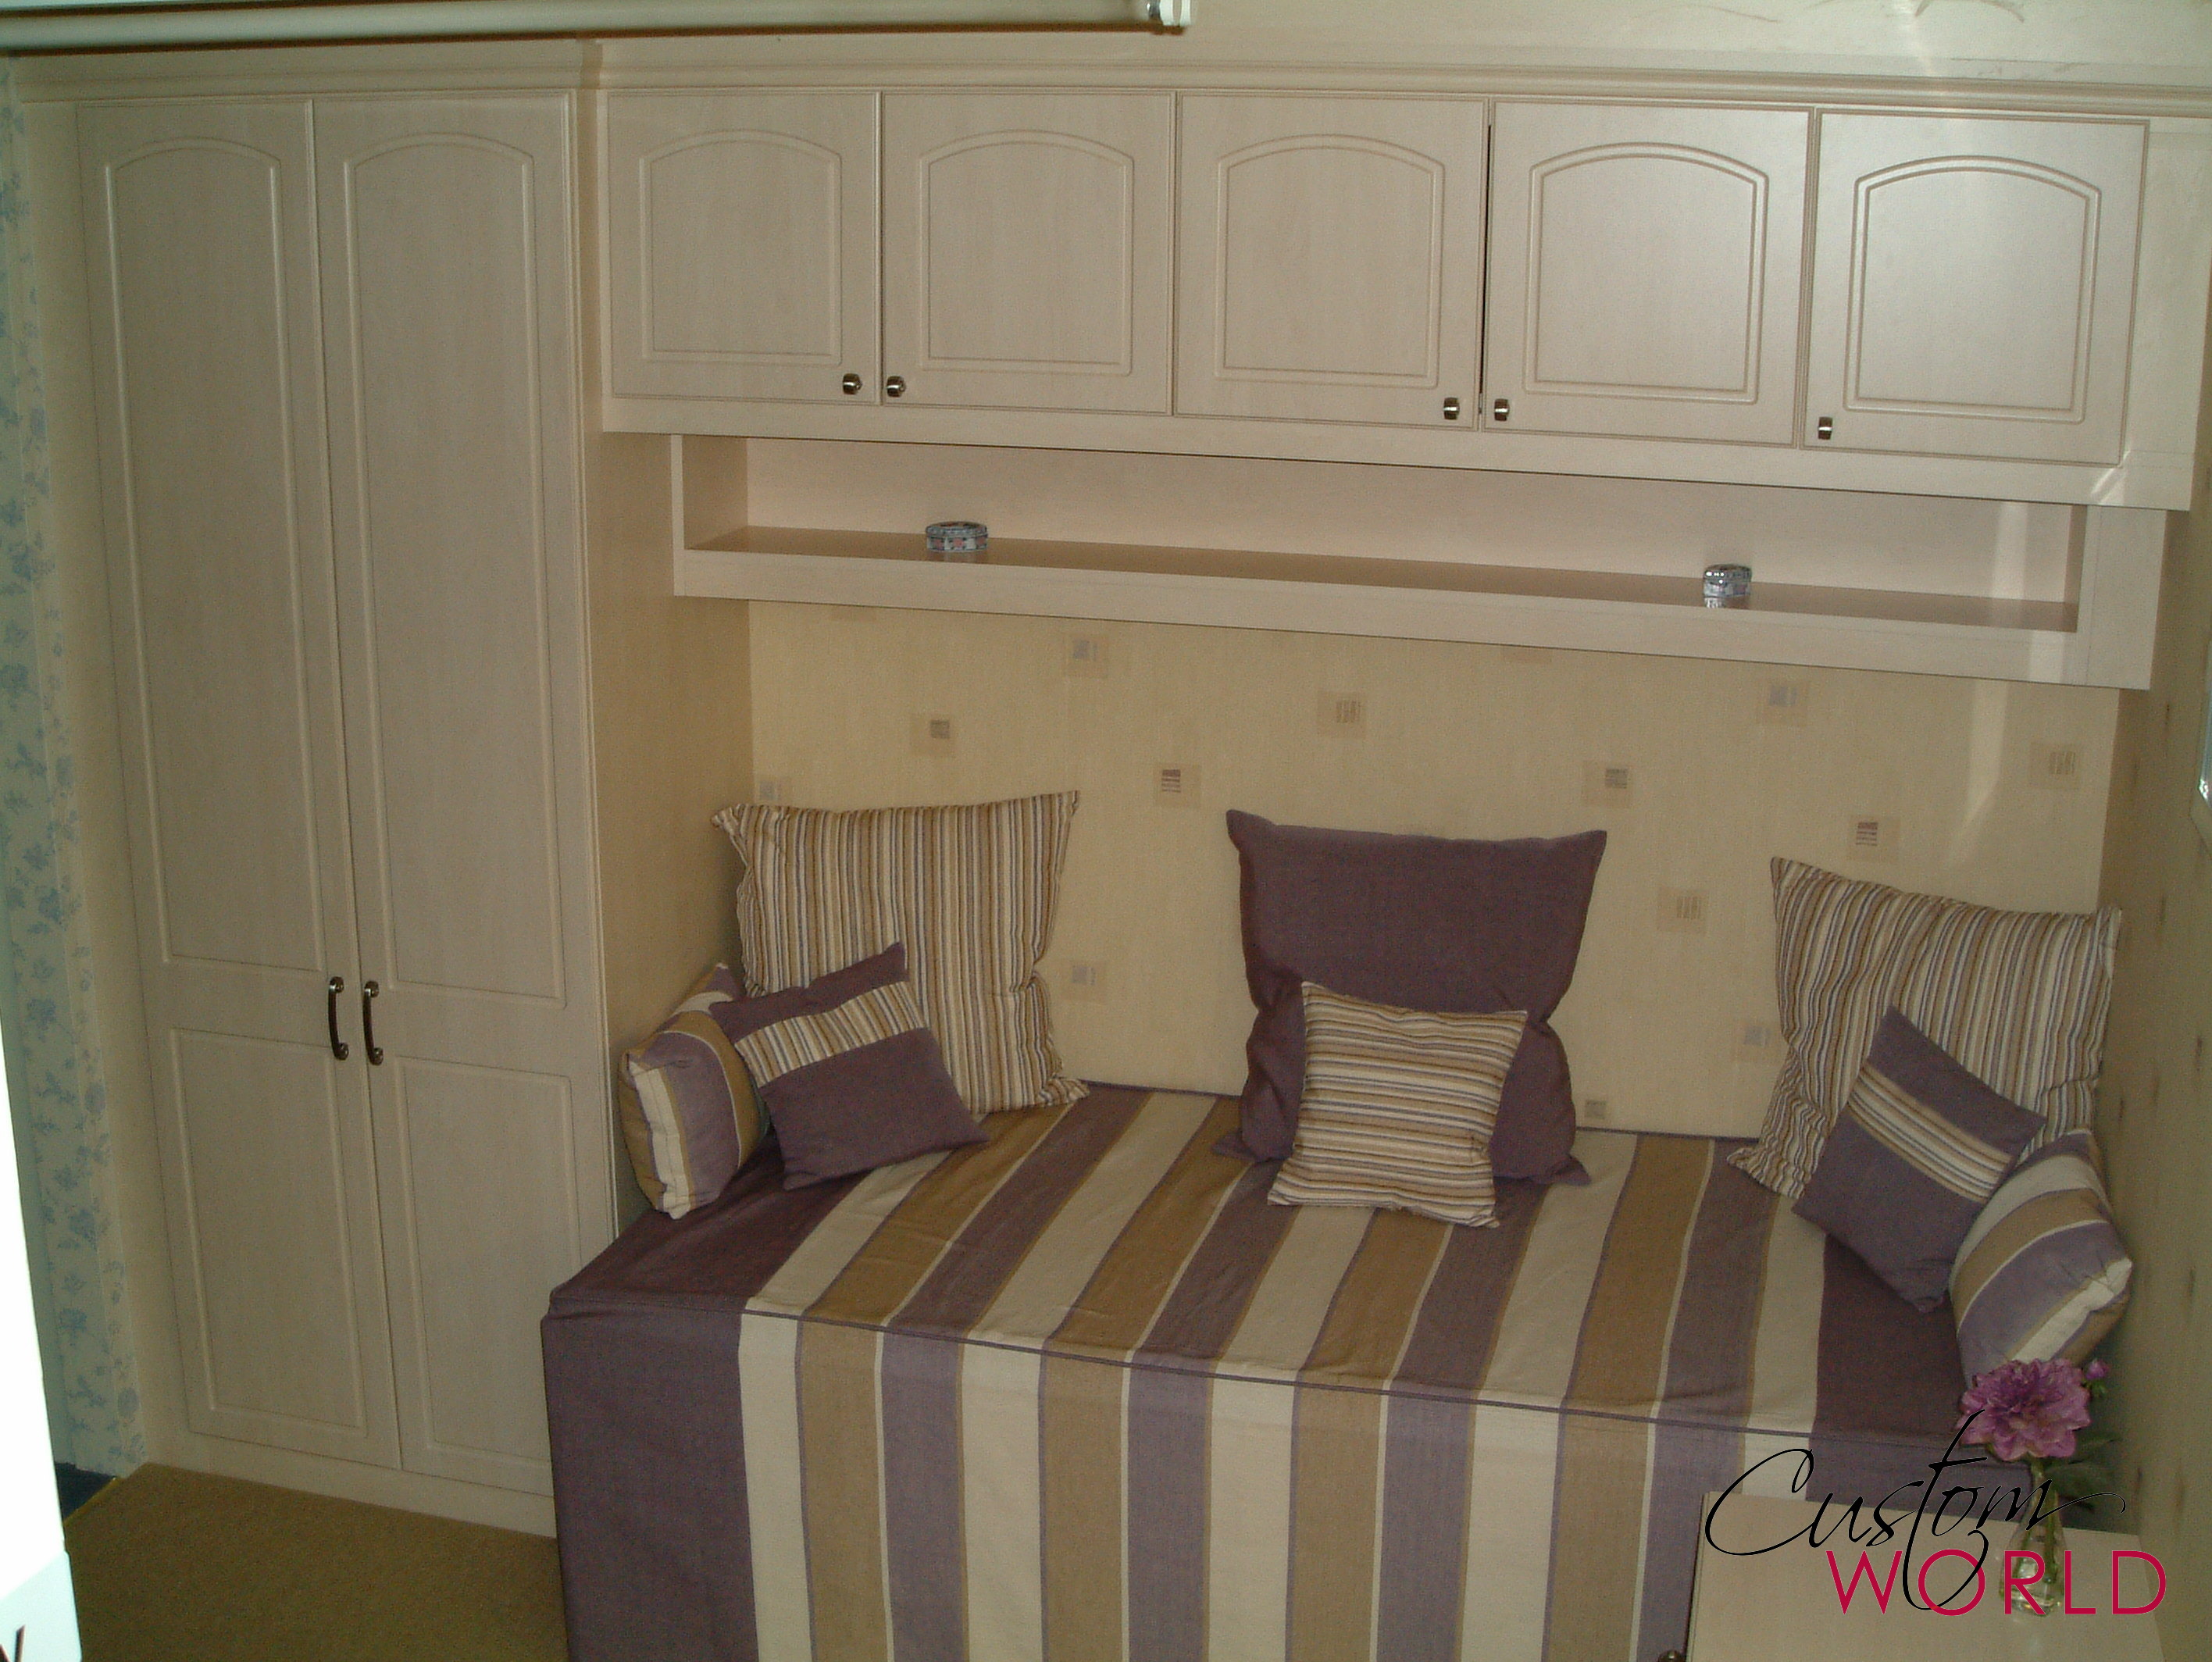 Bespoke bed furniture with overhead storage